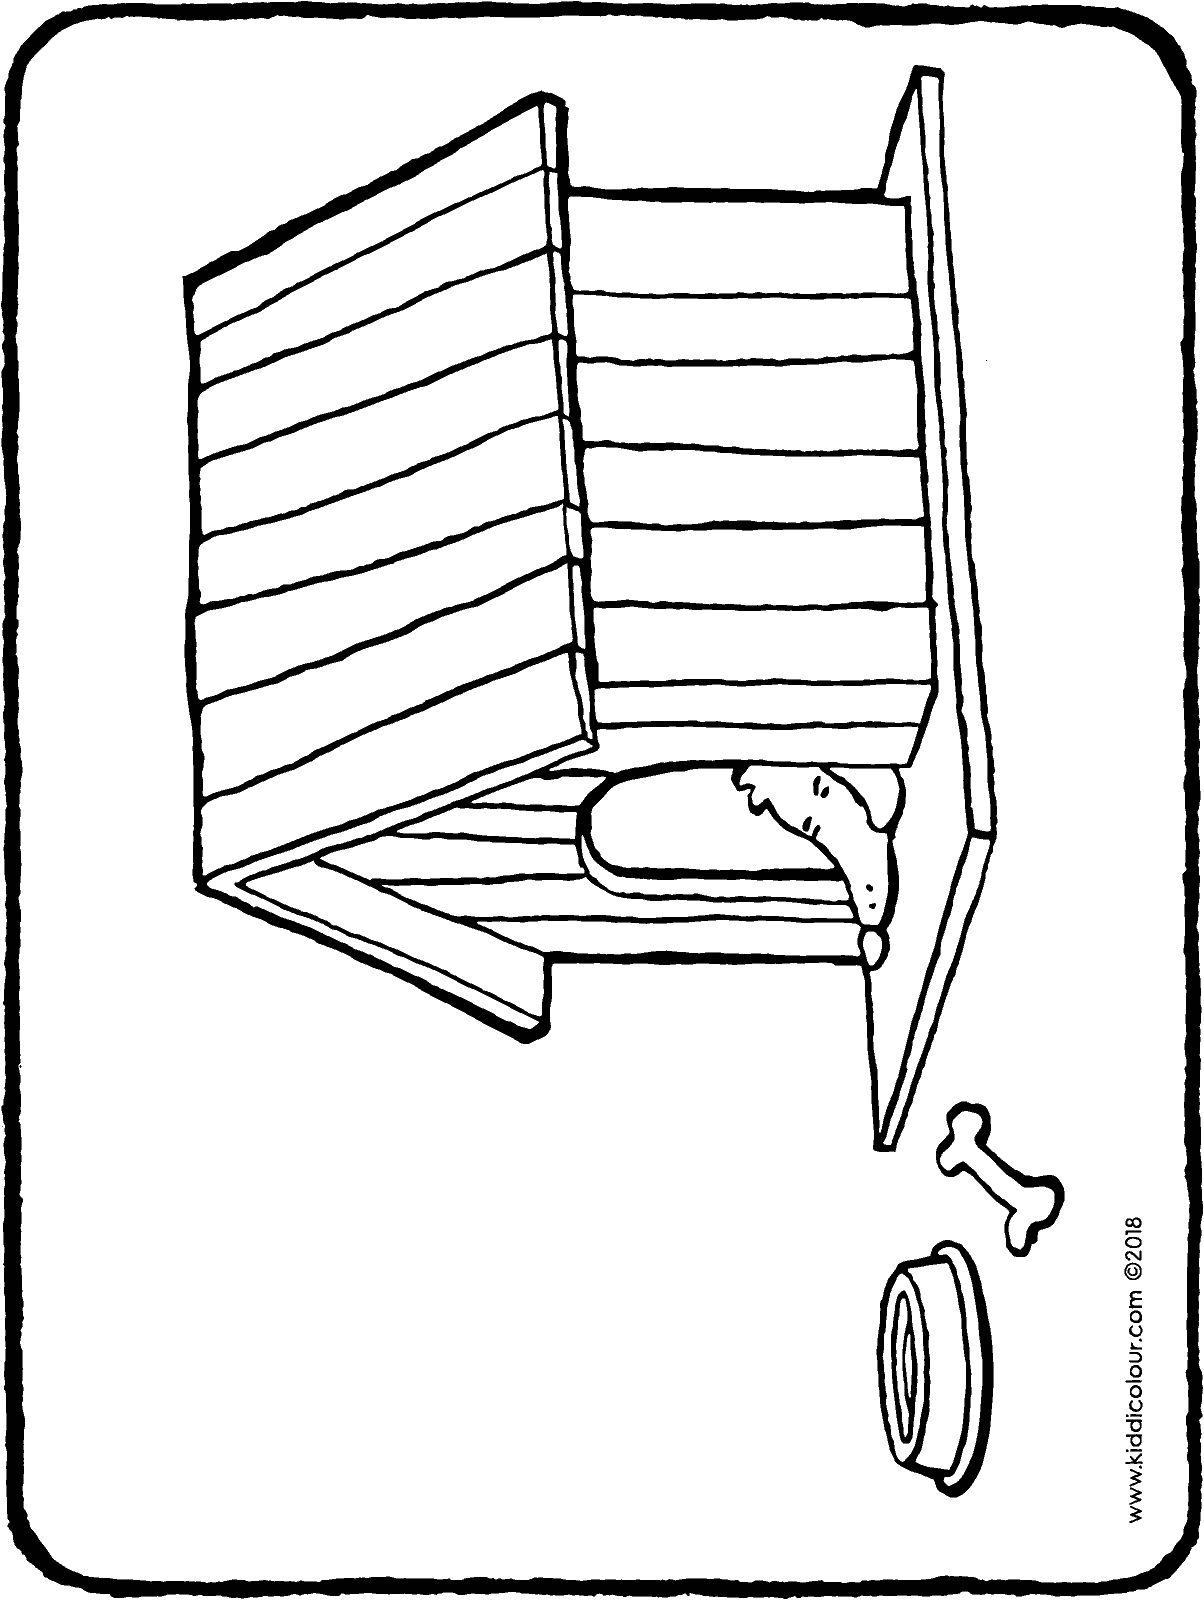 a dog in a kennel colouring page drawing picture 01H